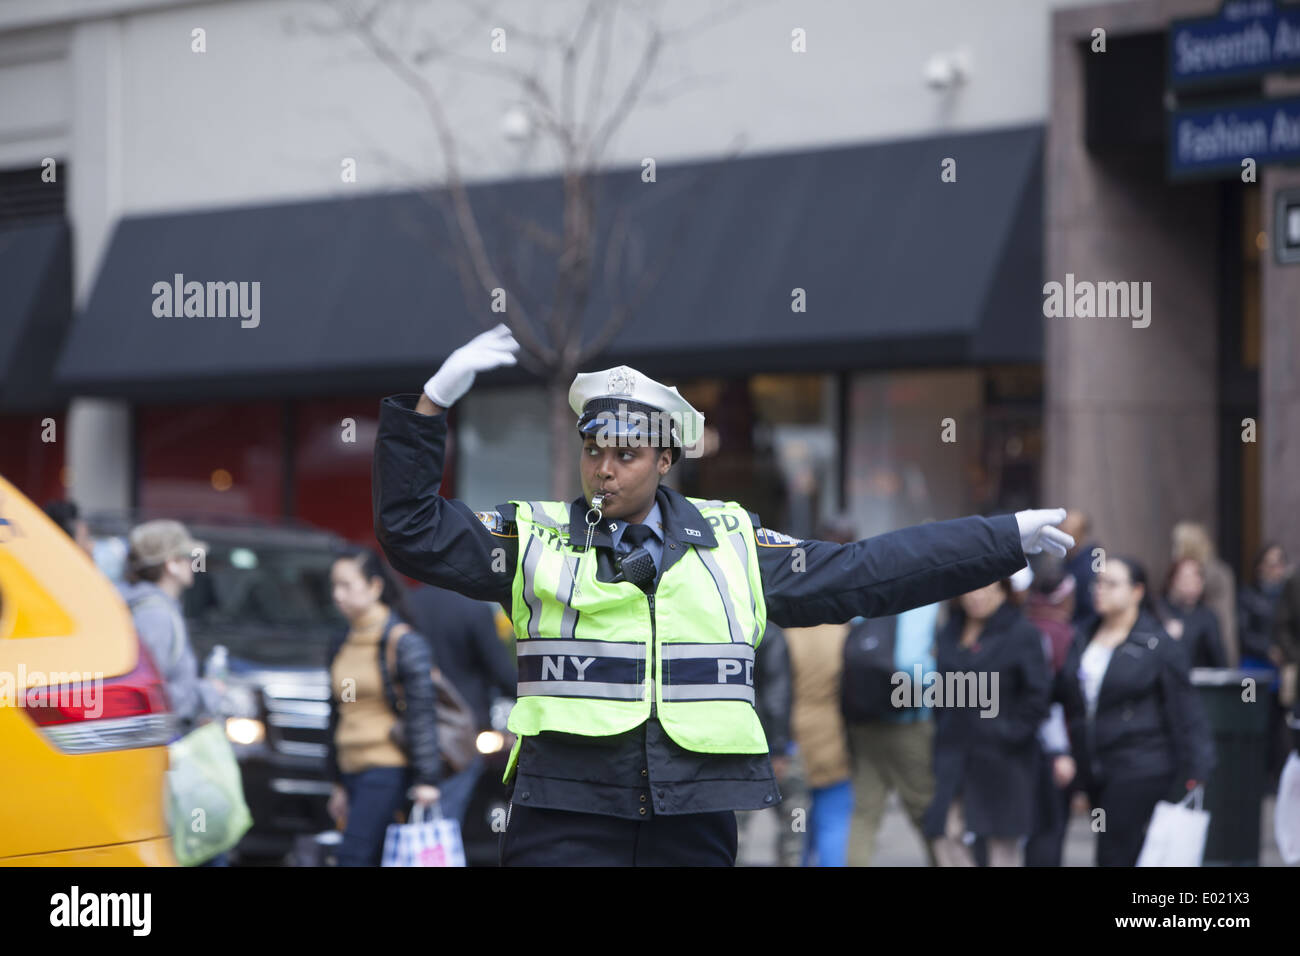 You have to keep your cool to be a traffic cop at 34th & Broadway by Macy's in NYC. - Stock Image